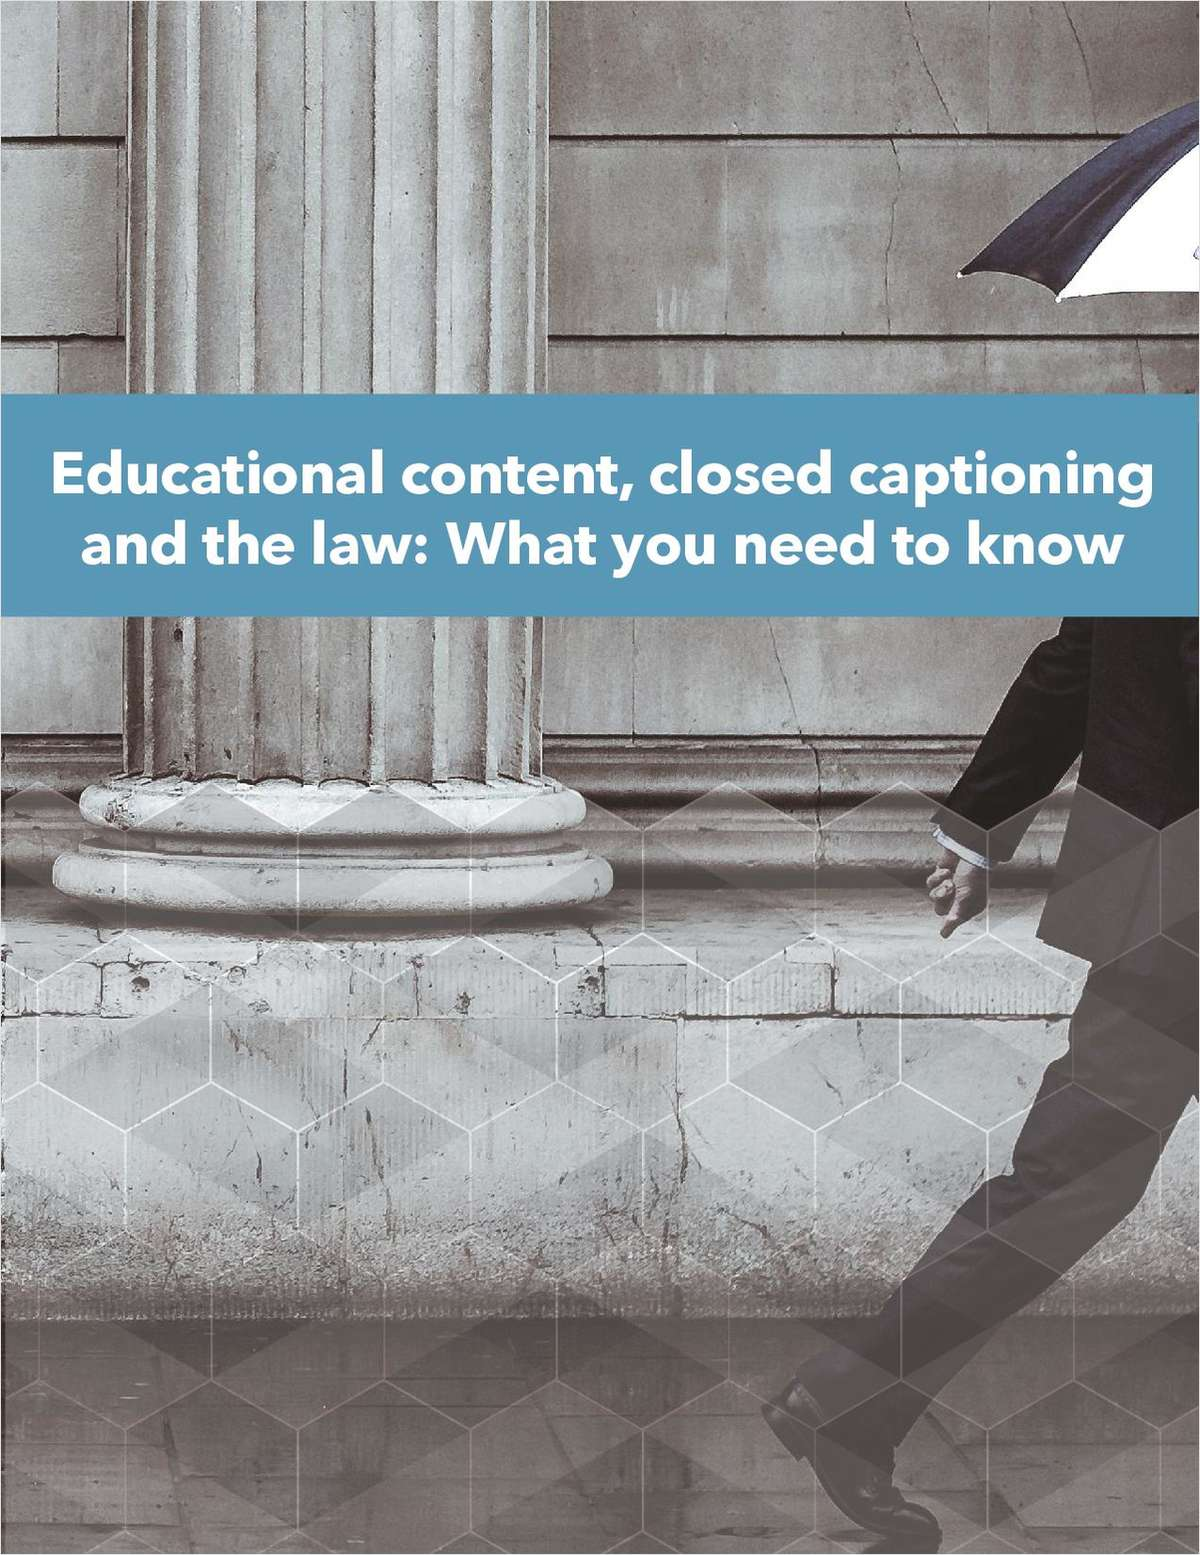 Educational content, closed captioning and the law: What you need to know